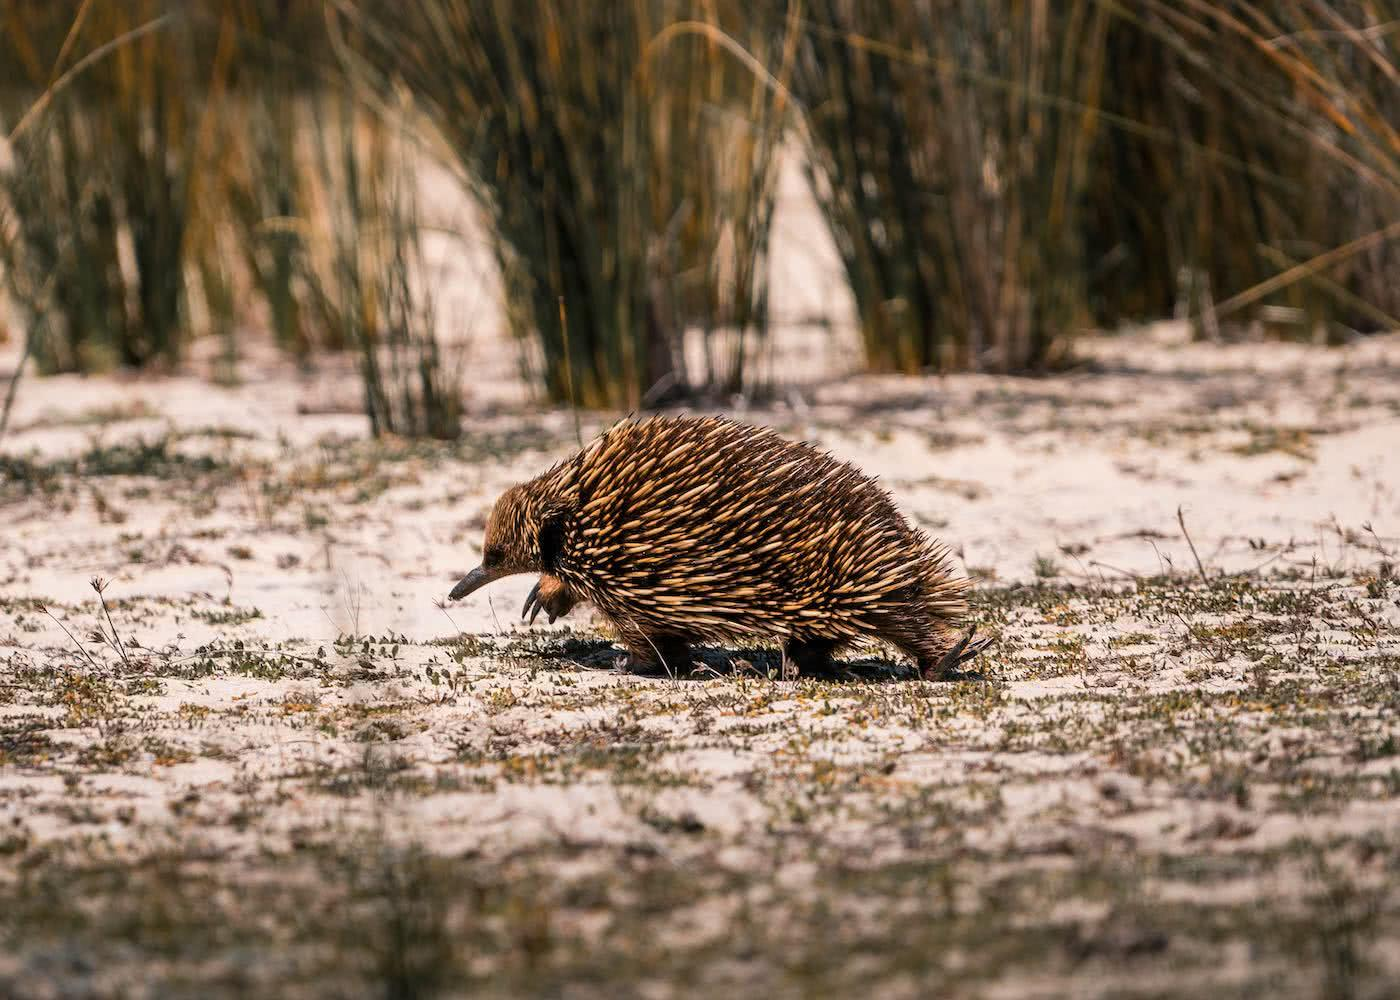 8 Great Reasons To Take Your Mates To Eurobodalla, photo by Fin Matson, echidna, Bingi Bingi Dreaming Track, sand